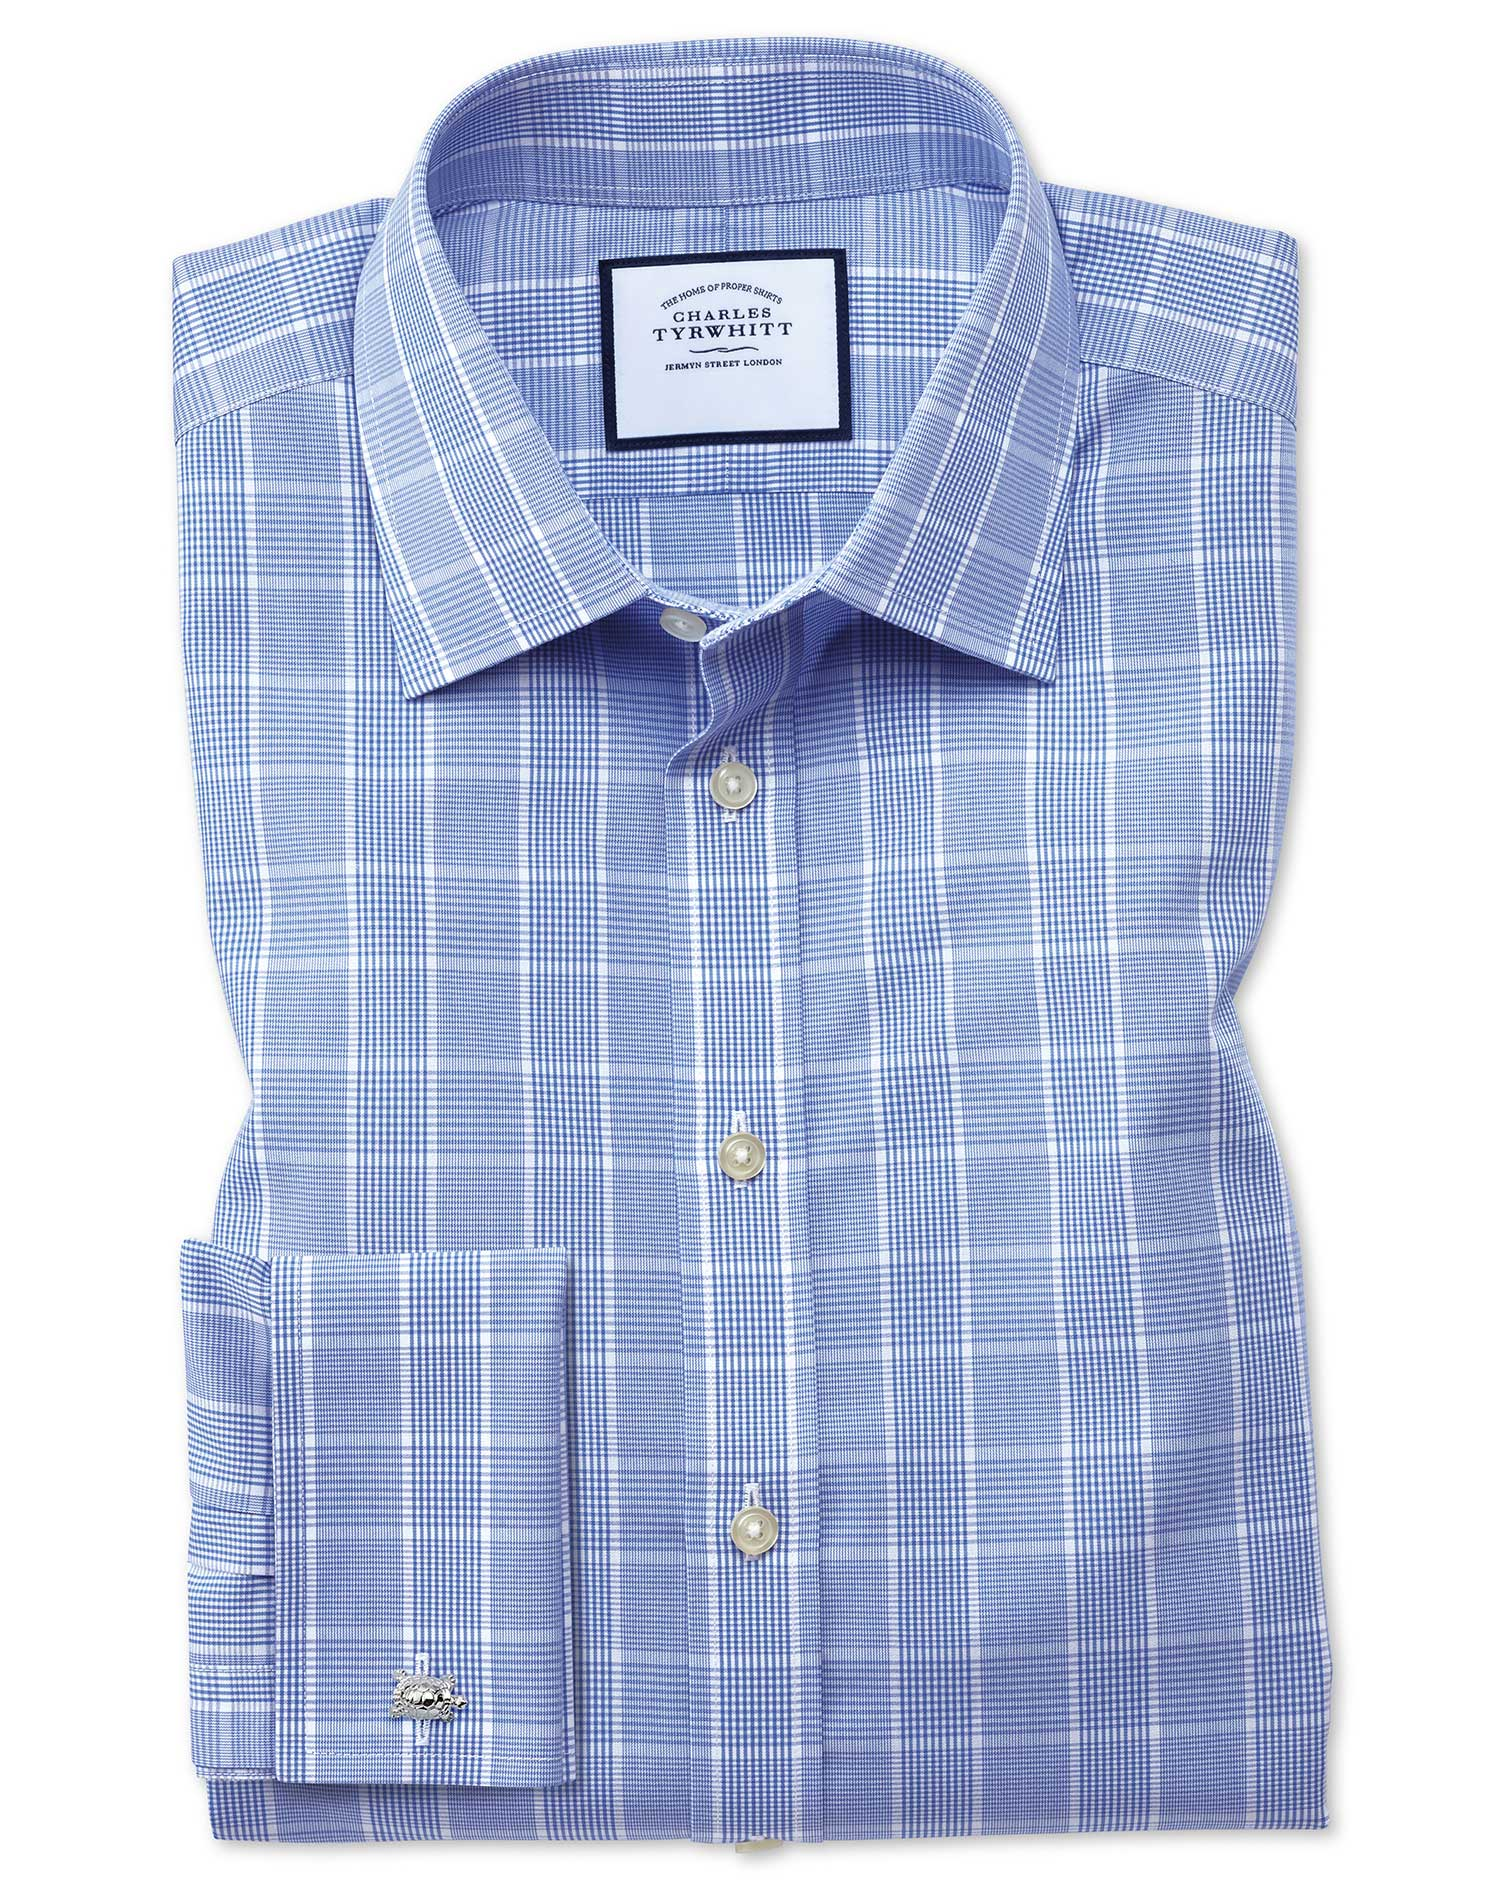 Classic Fit Non-Iron Prince Of Wales Mid Blue Cotton Formal Shirt Single Cuff Size 18/38 by Charles